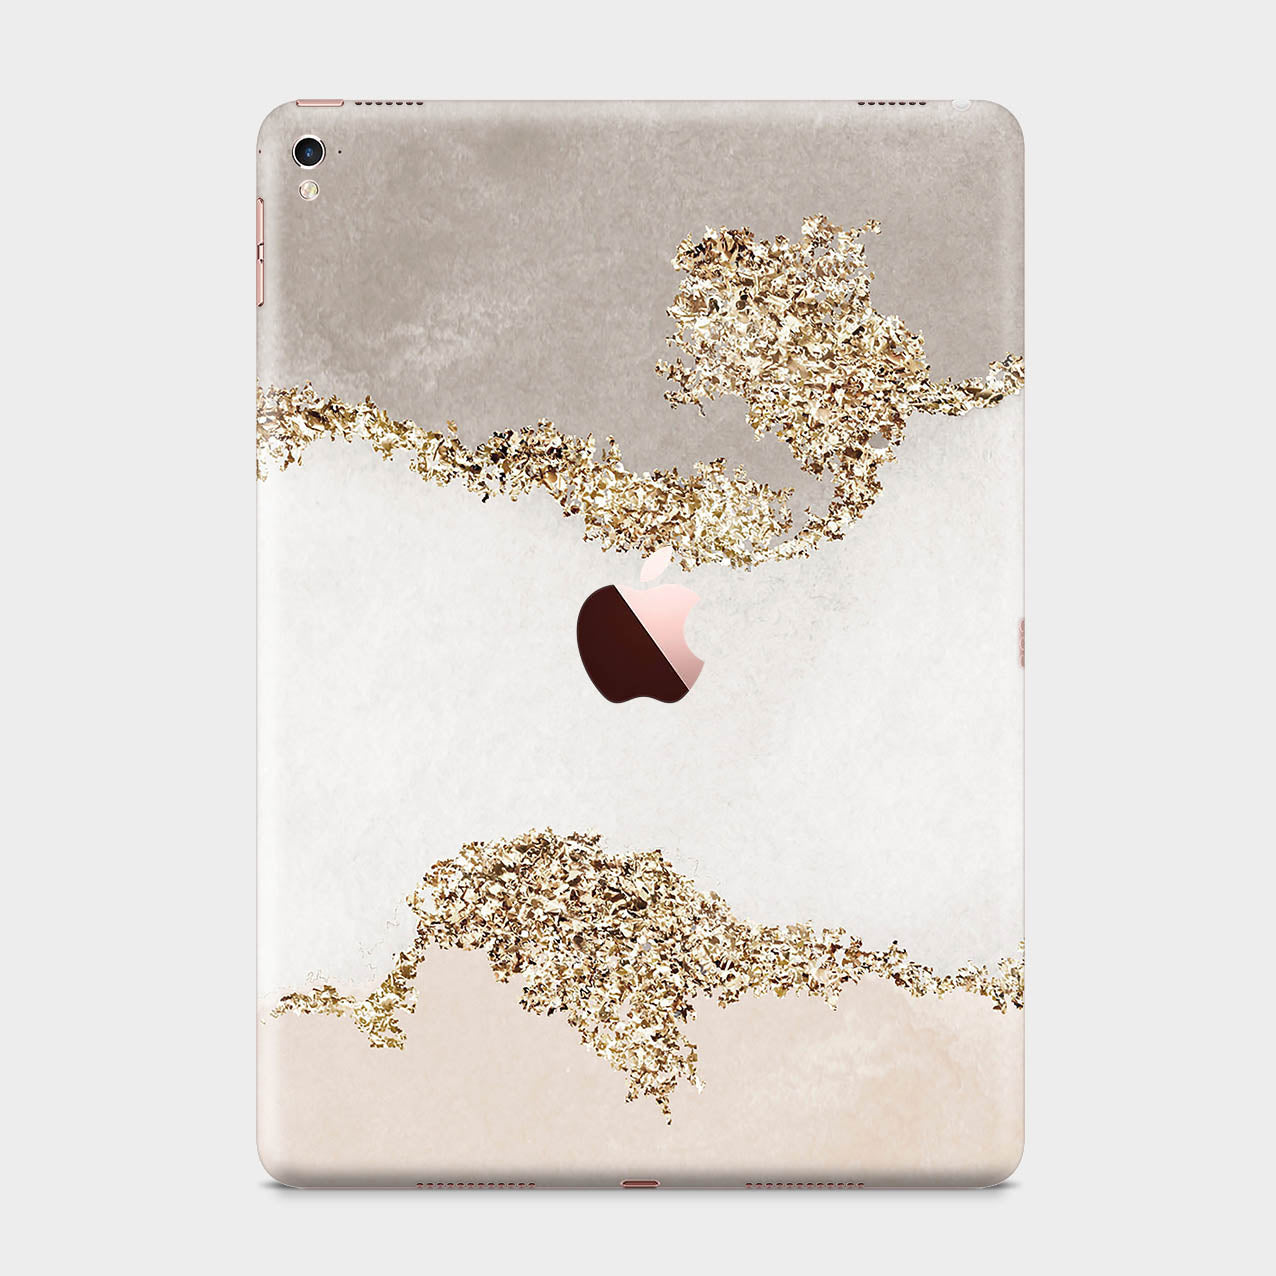 GOLDEN COAST iPad Mini 3 skins | Pigtou